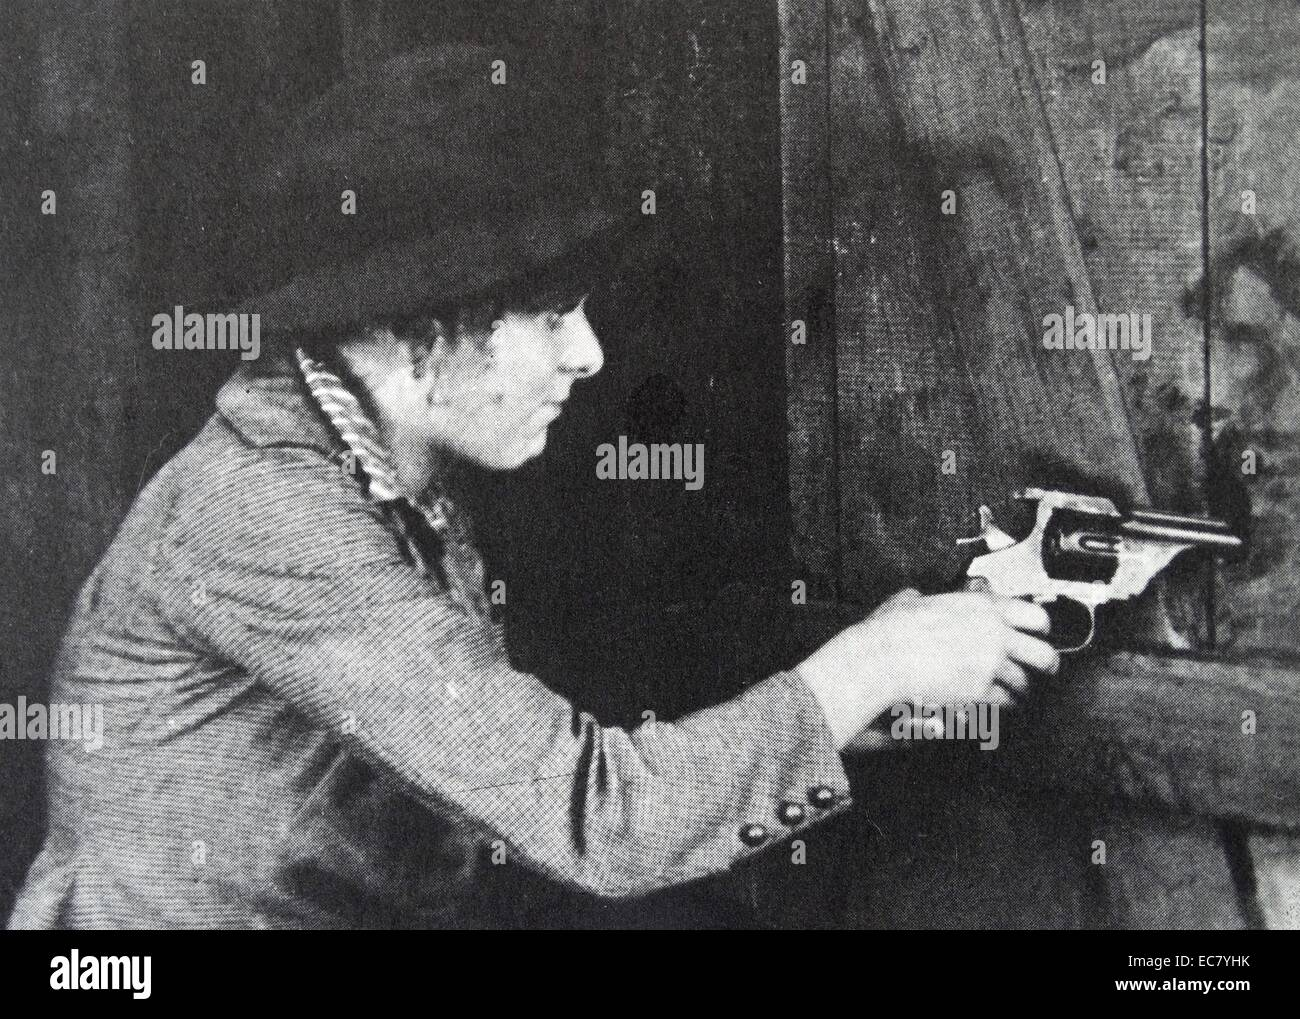 'Fighting Blood', 1911 directed by Griffith for Biograph, with Blanche Sweet. - Stock Image